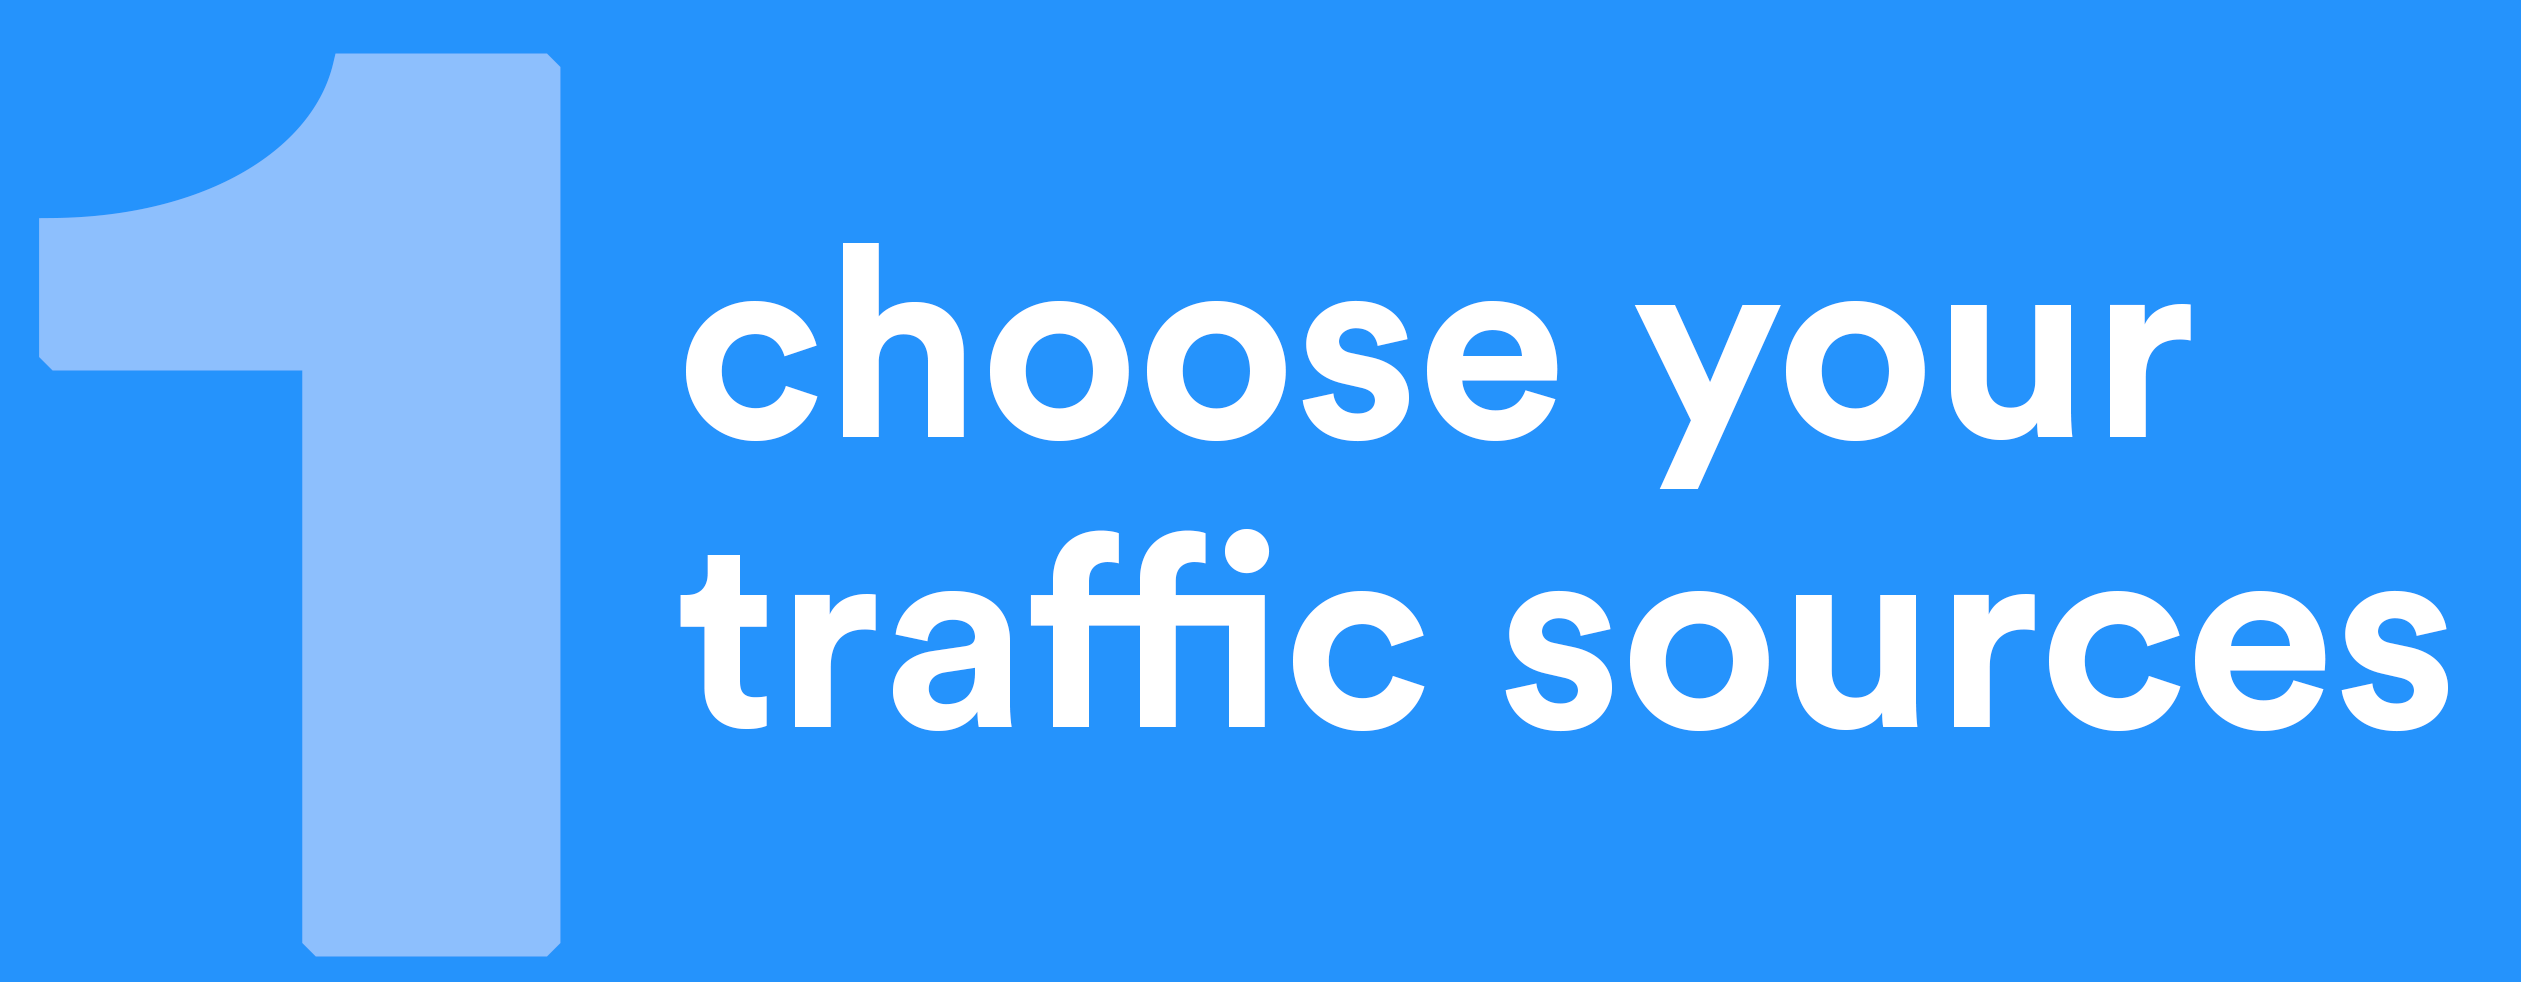 choose your traffic sources